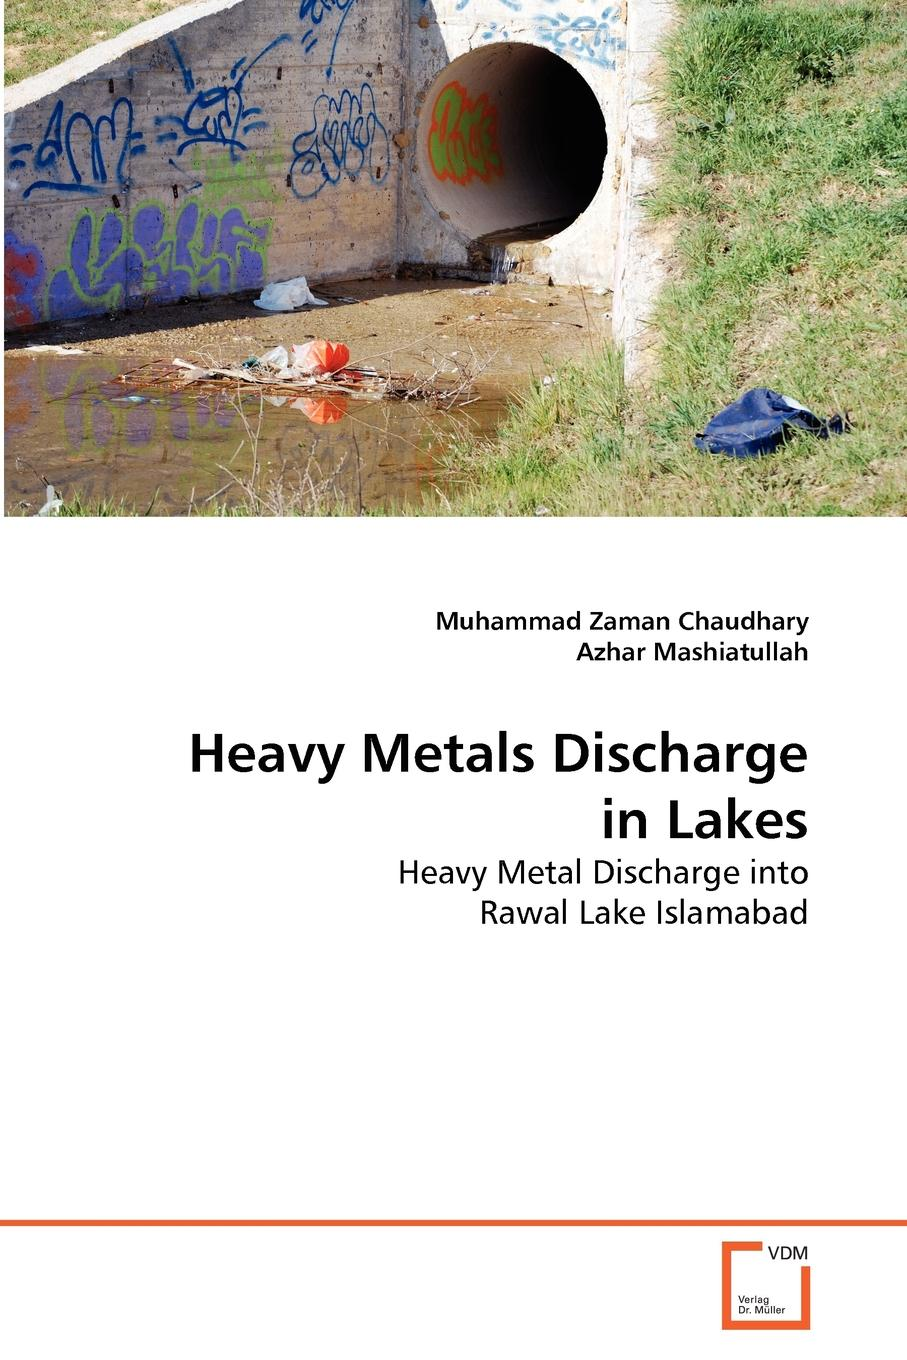 Muhammad Zaman Chaudhary, Azhar Mashiatullah Heavy Metals Discharge in Lakes bioavailability and solubility equilibria of heavy metals in soils